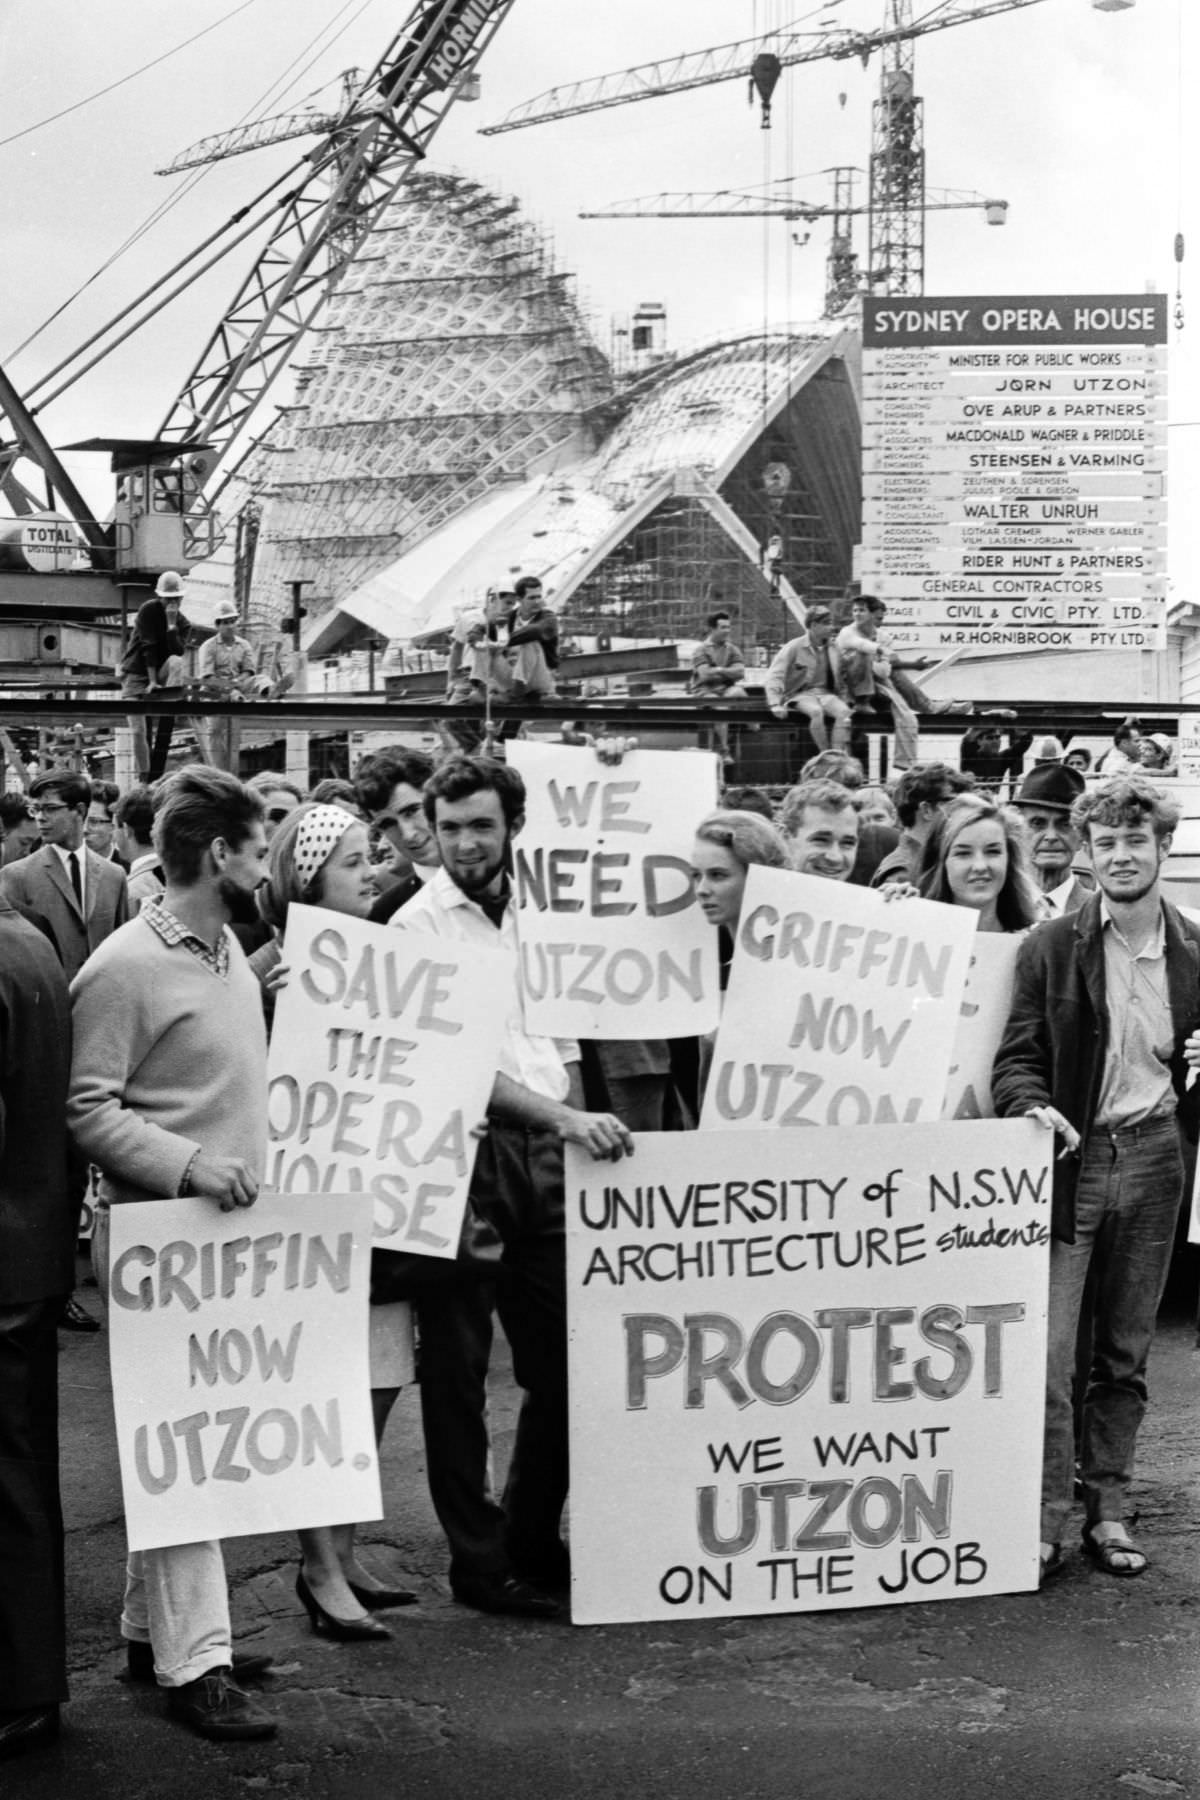 Students protest and march from Sydney Opera House to Parliament House in Sydney after the resignation of architect Jørn Utzon, March 3, 1966.